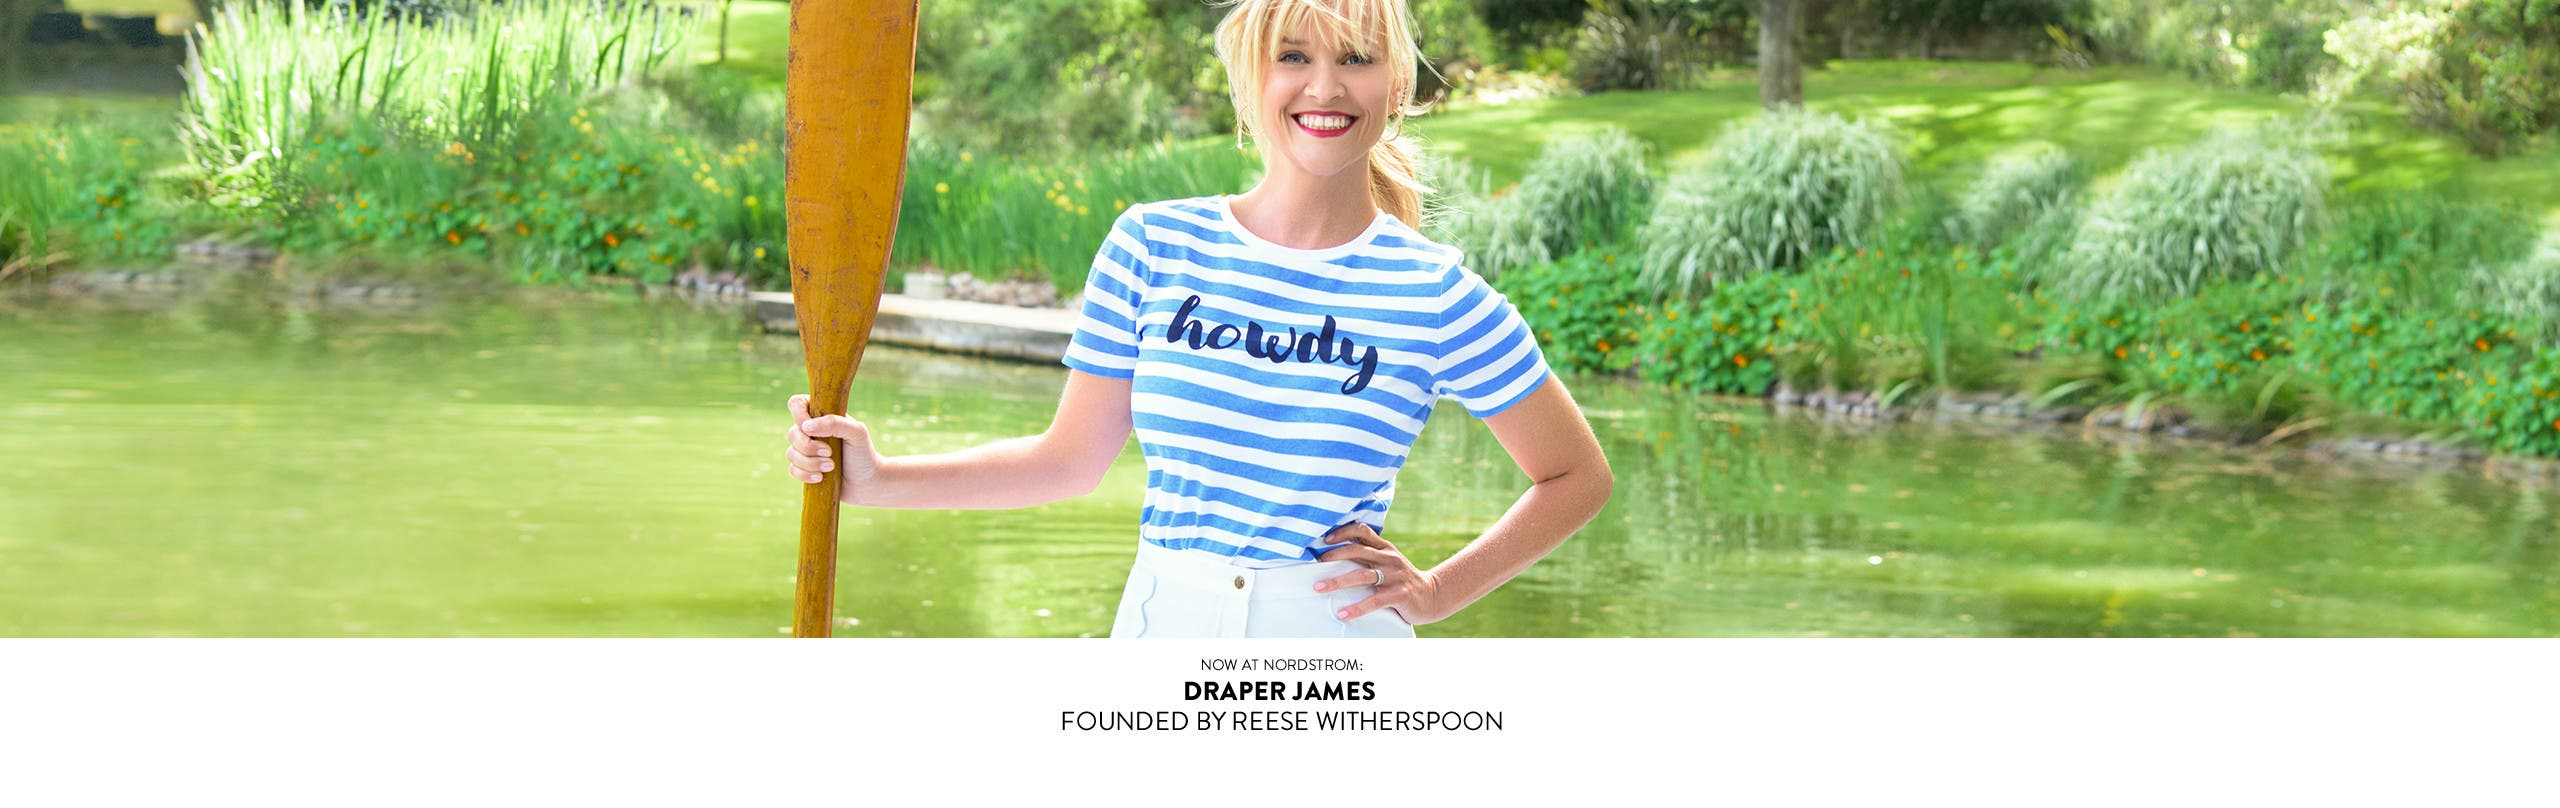 Now at Nordstrom: Draper James founded by Reese Witherspoon.